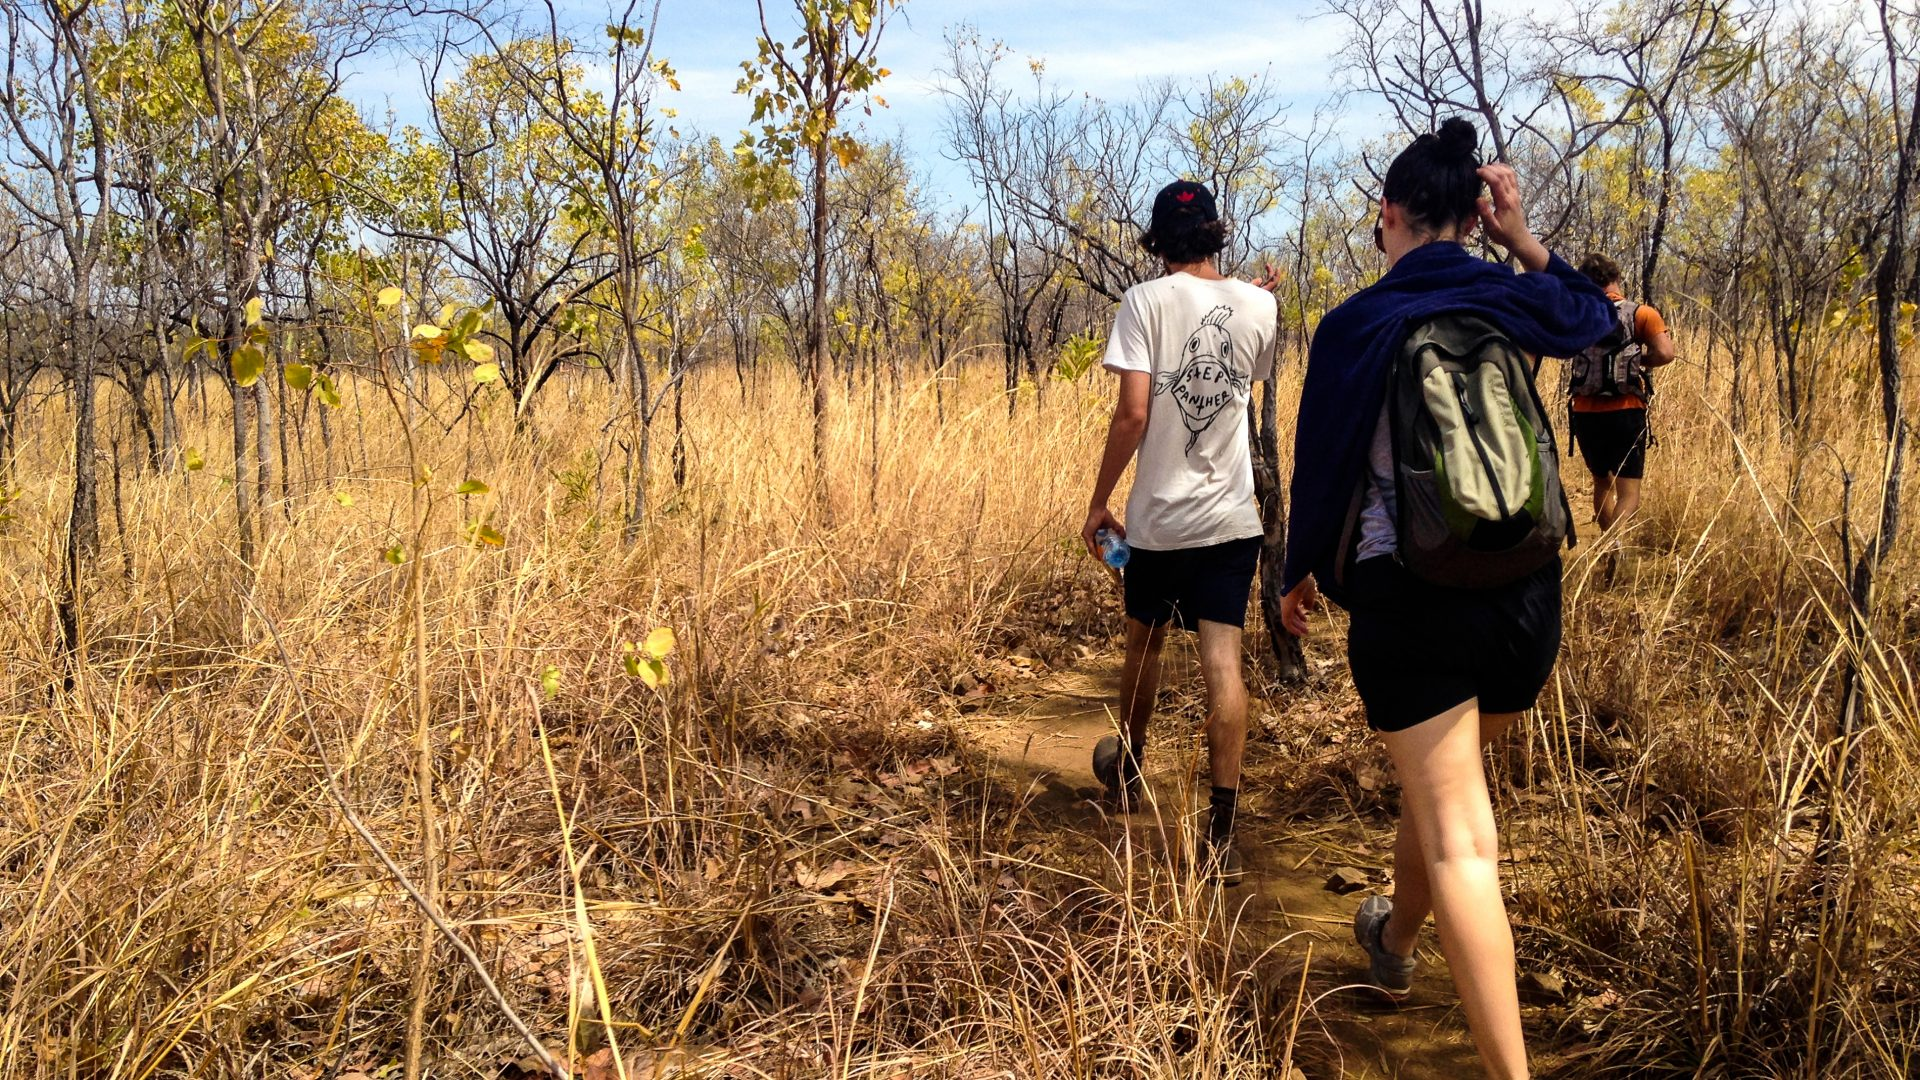 Travelers hike through the yellowing grasses of the Outback in Australia.